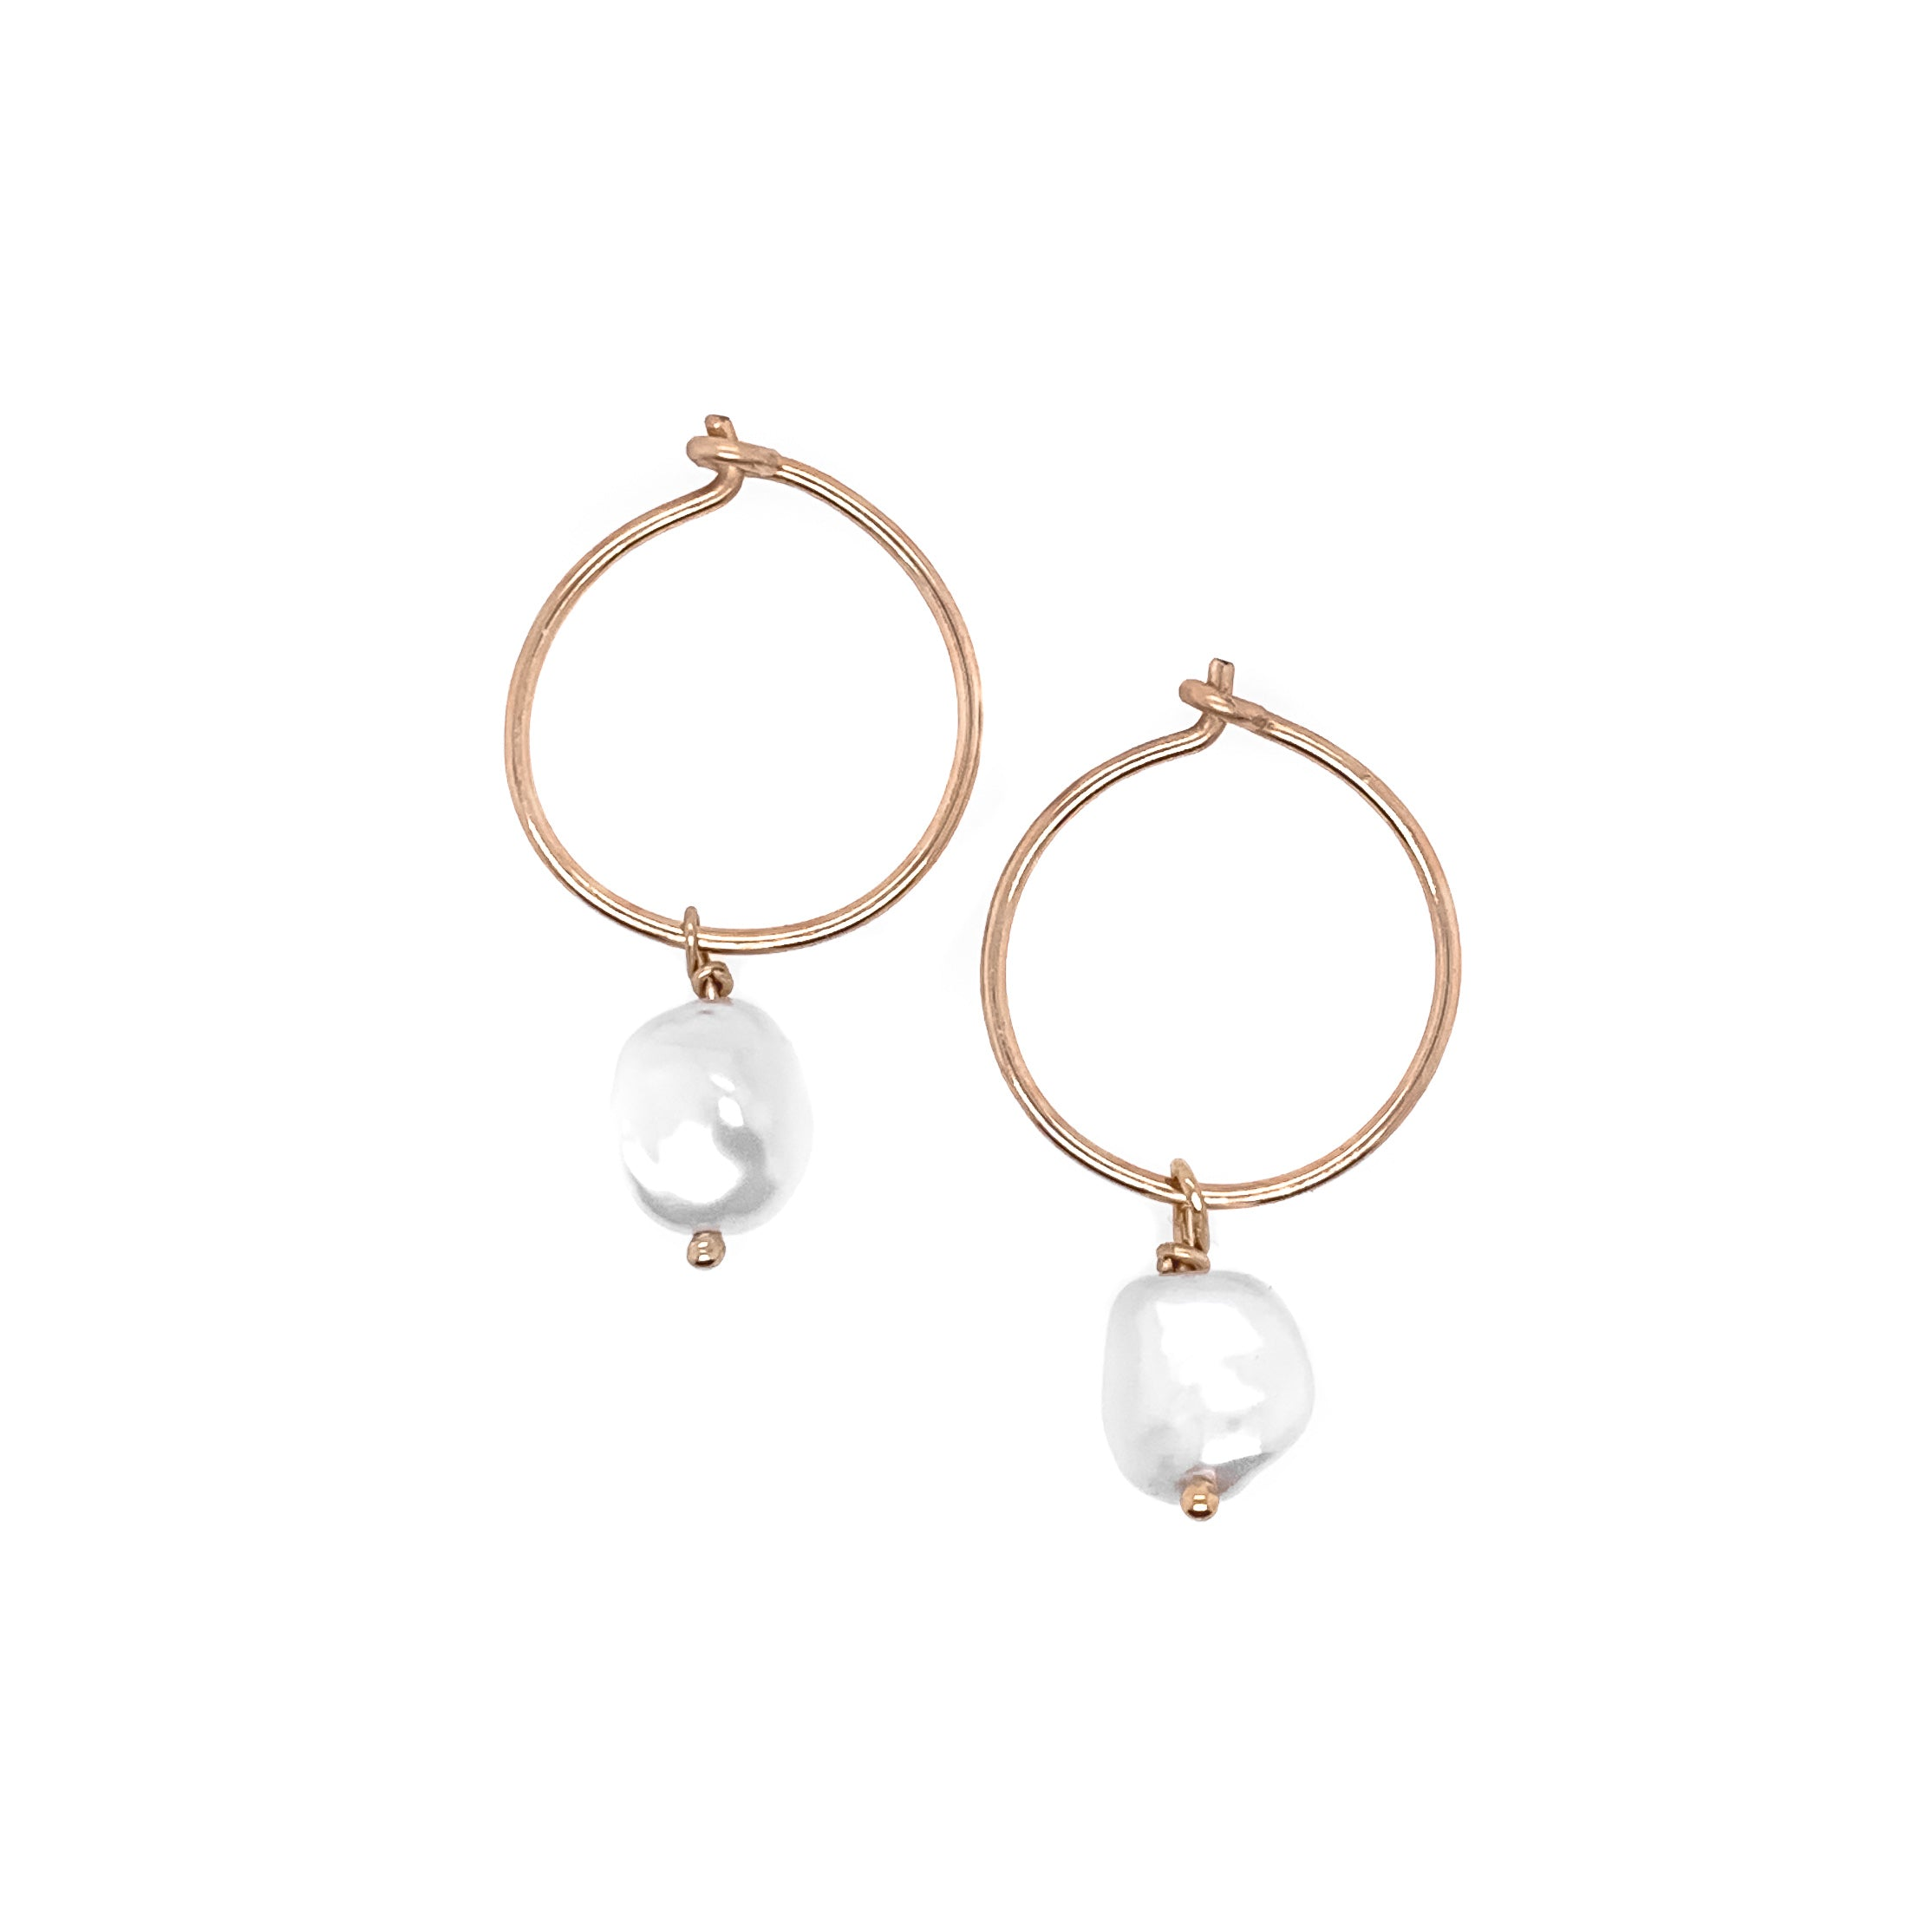 NIPIY EARRINGS - 14k Gold Filled